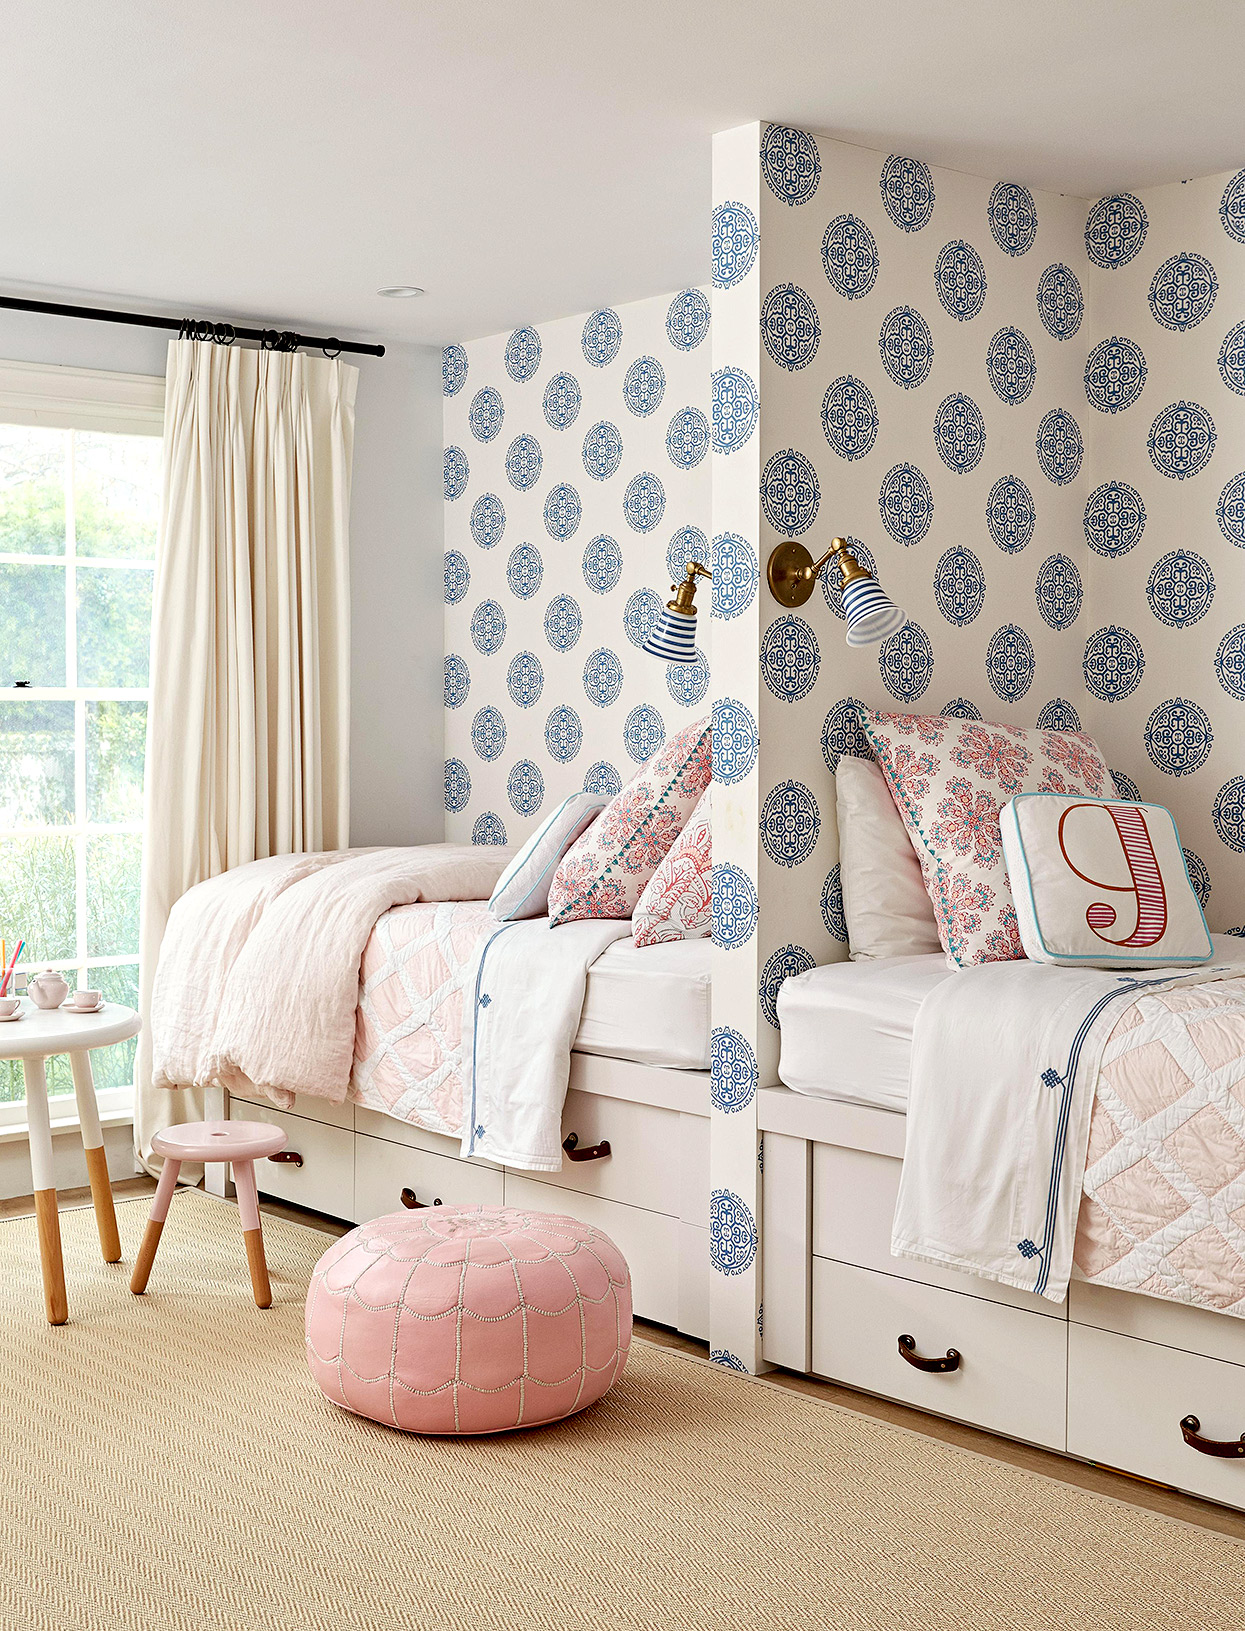 Shared Bedroom Ideas for Small Rooms   Better Homes & Gardens